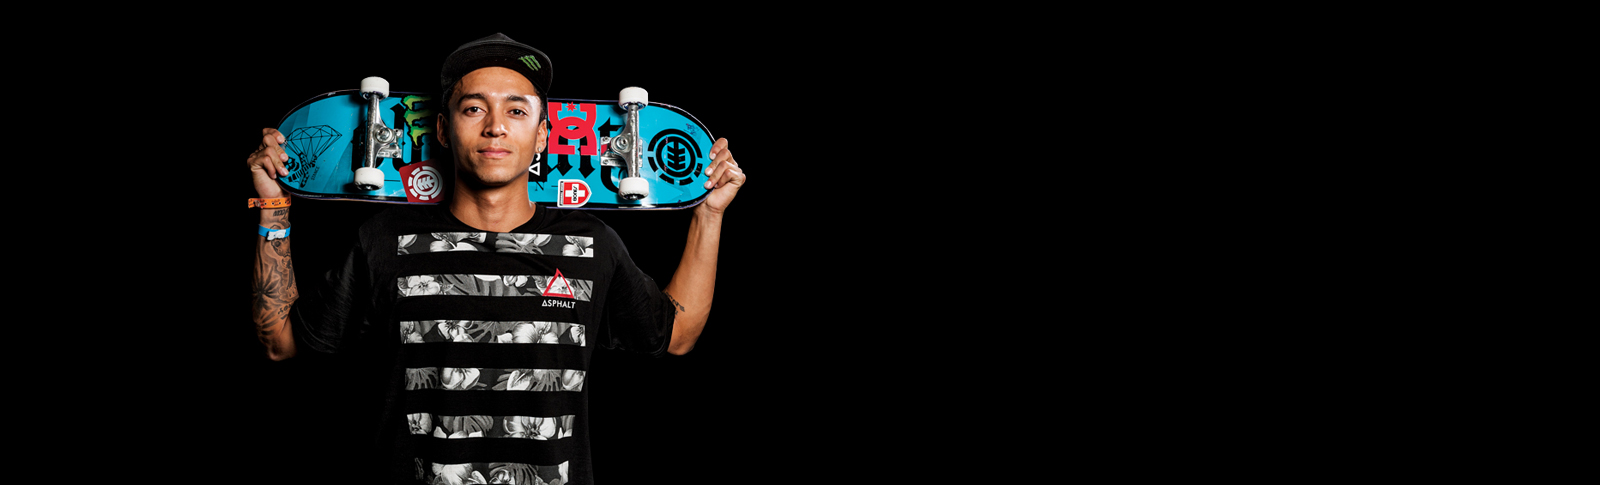 Nyjah Huston